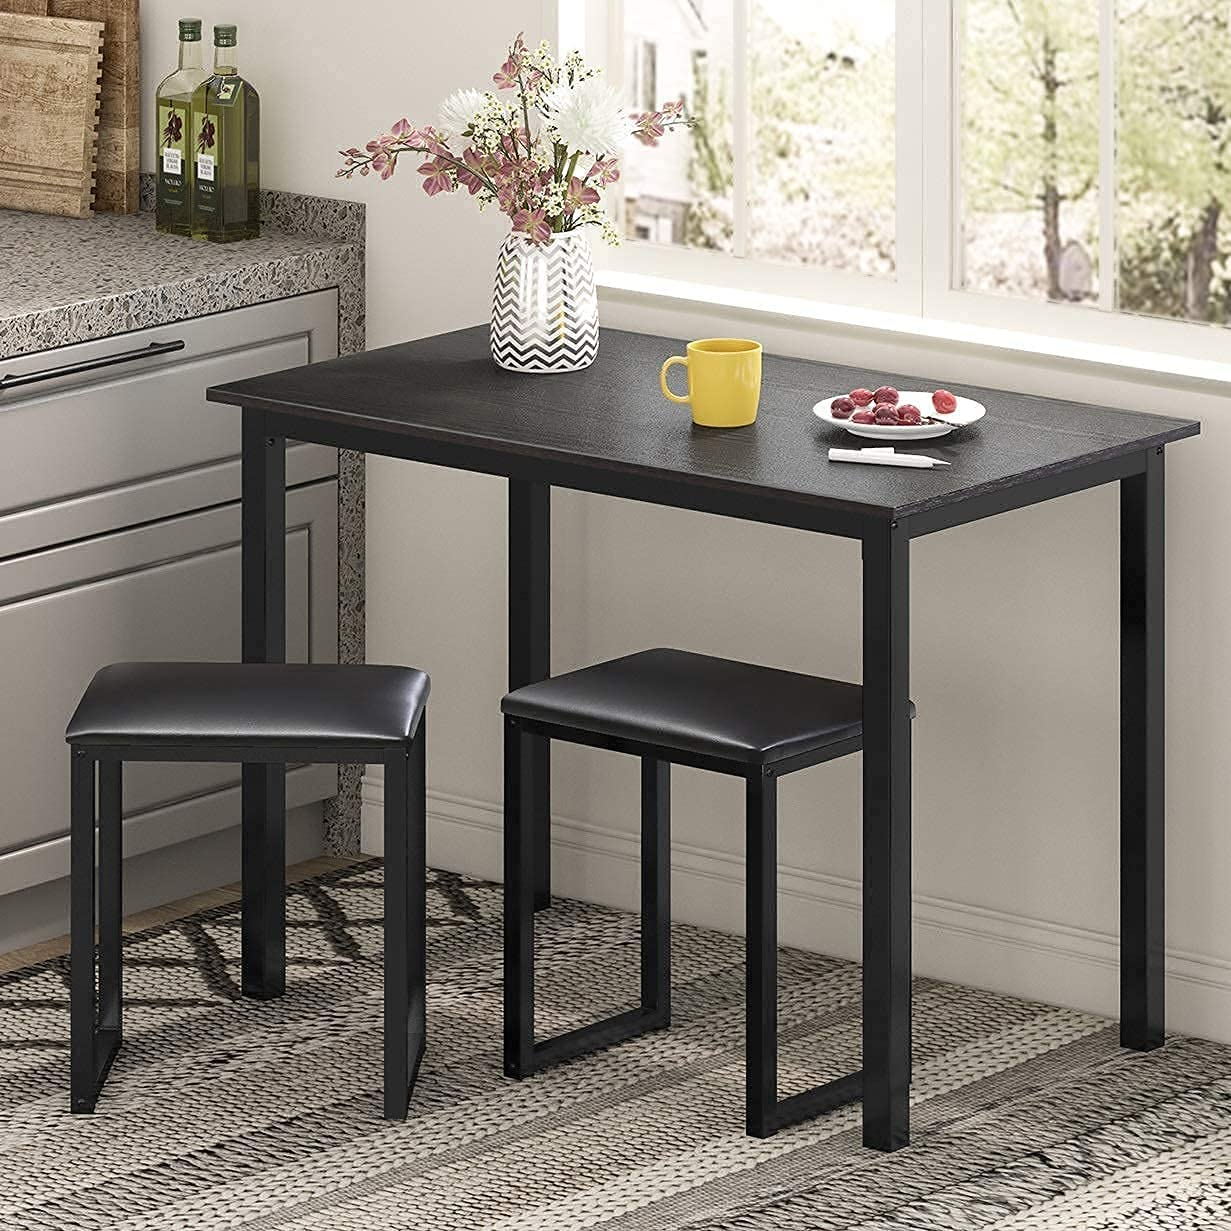 HOMURY Award-winning store 3 Max 81% OFF Pieces Dining Table Set with Inch 42 Padded Kit Stools